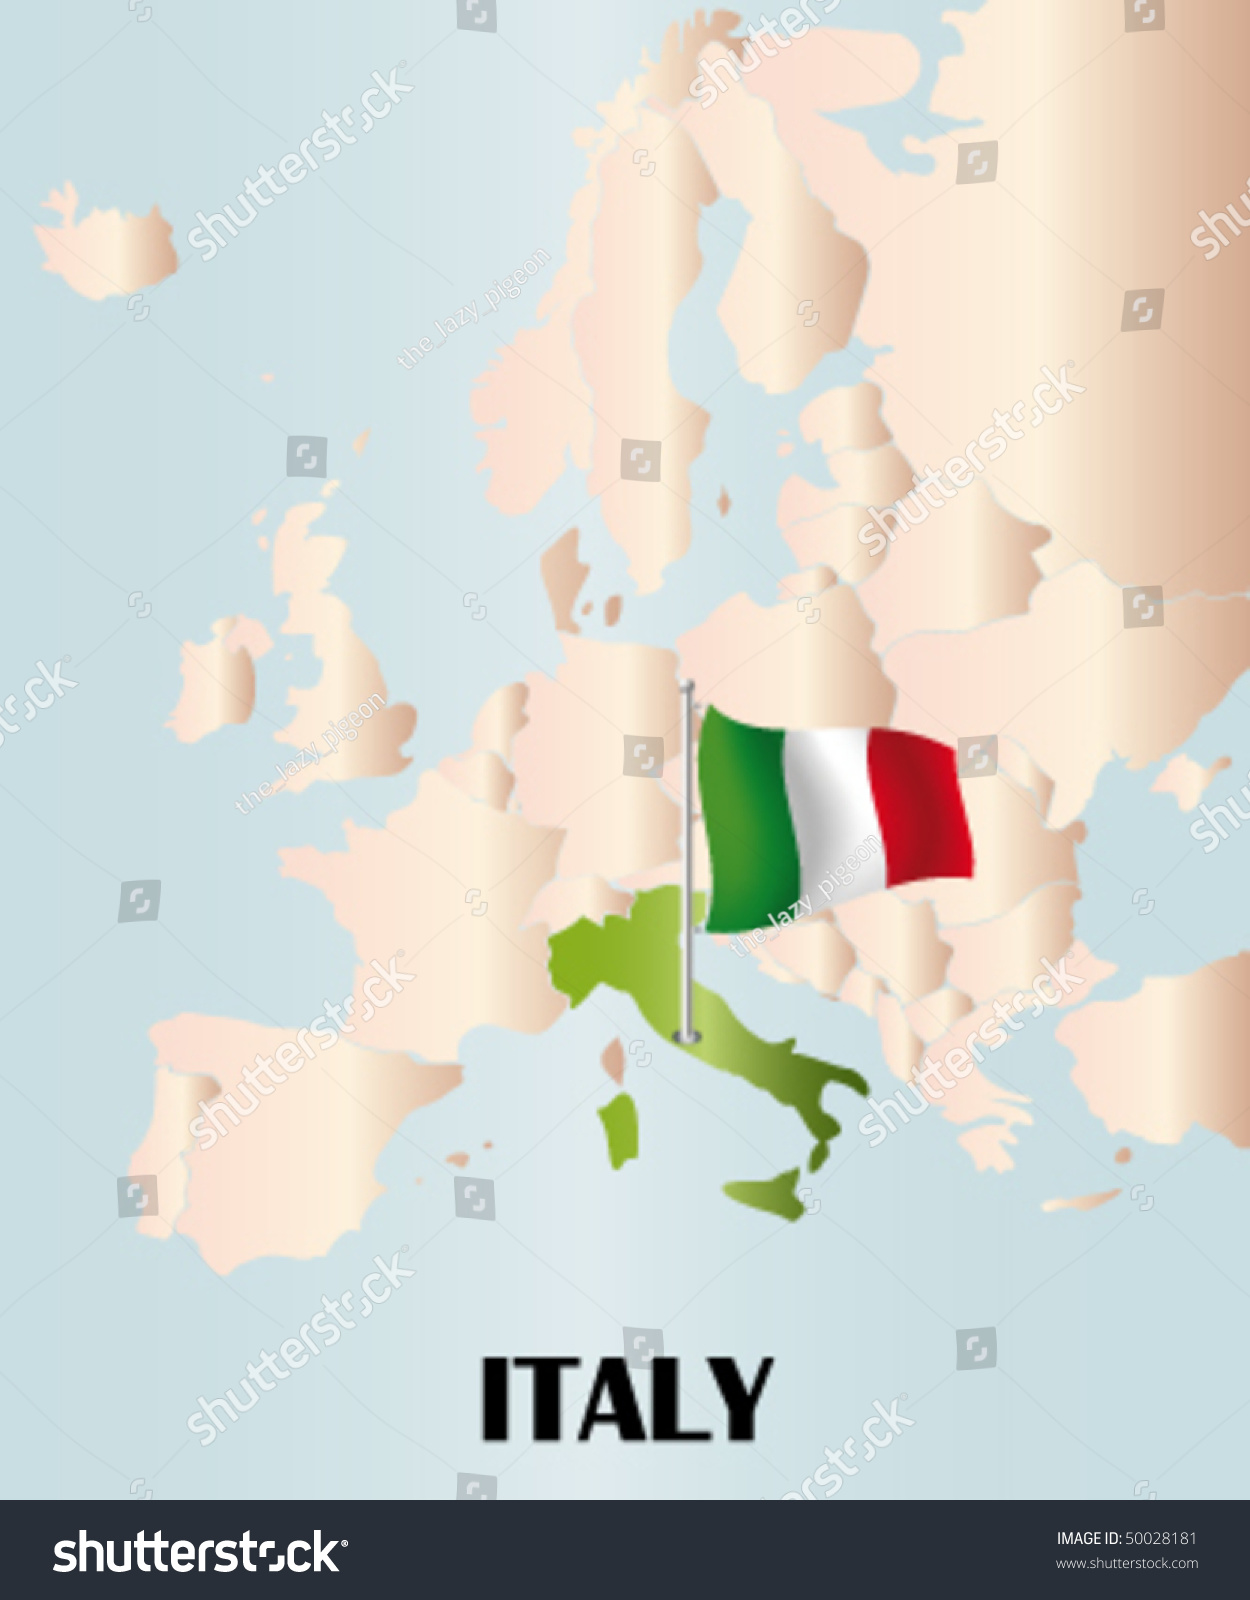 Detailed Vector Map Italy Europe Stock Vector Royalty Free